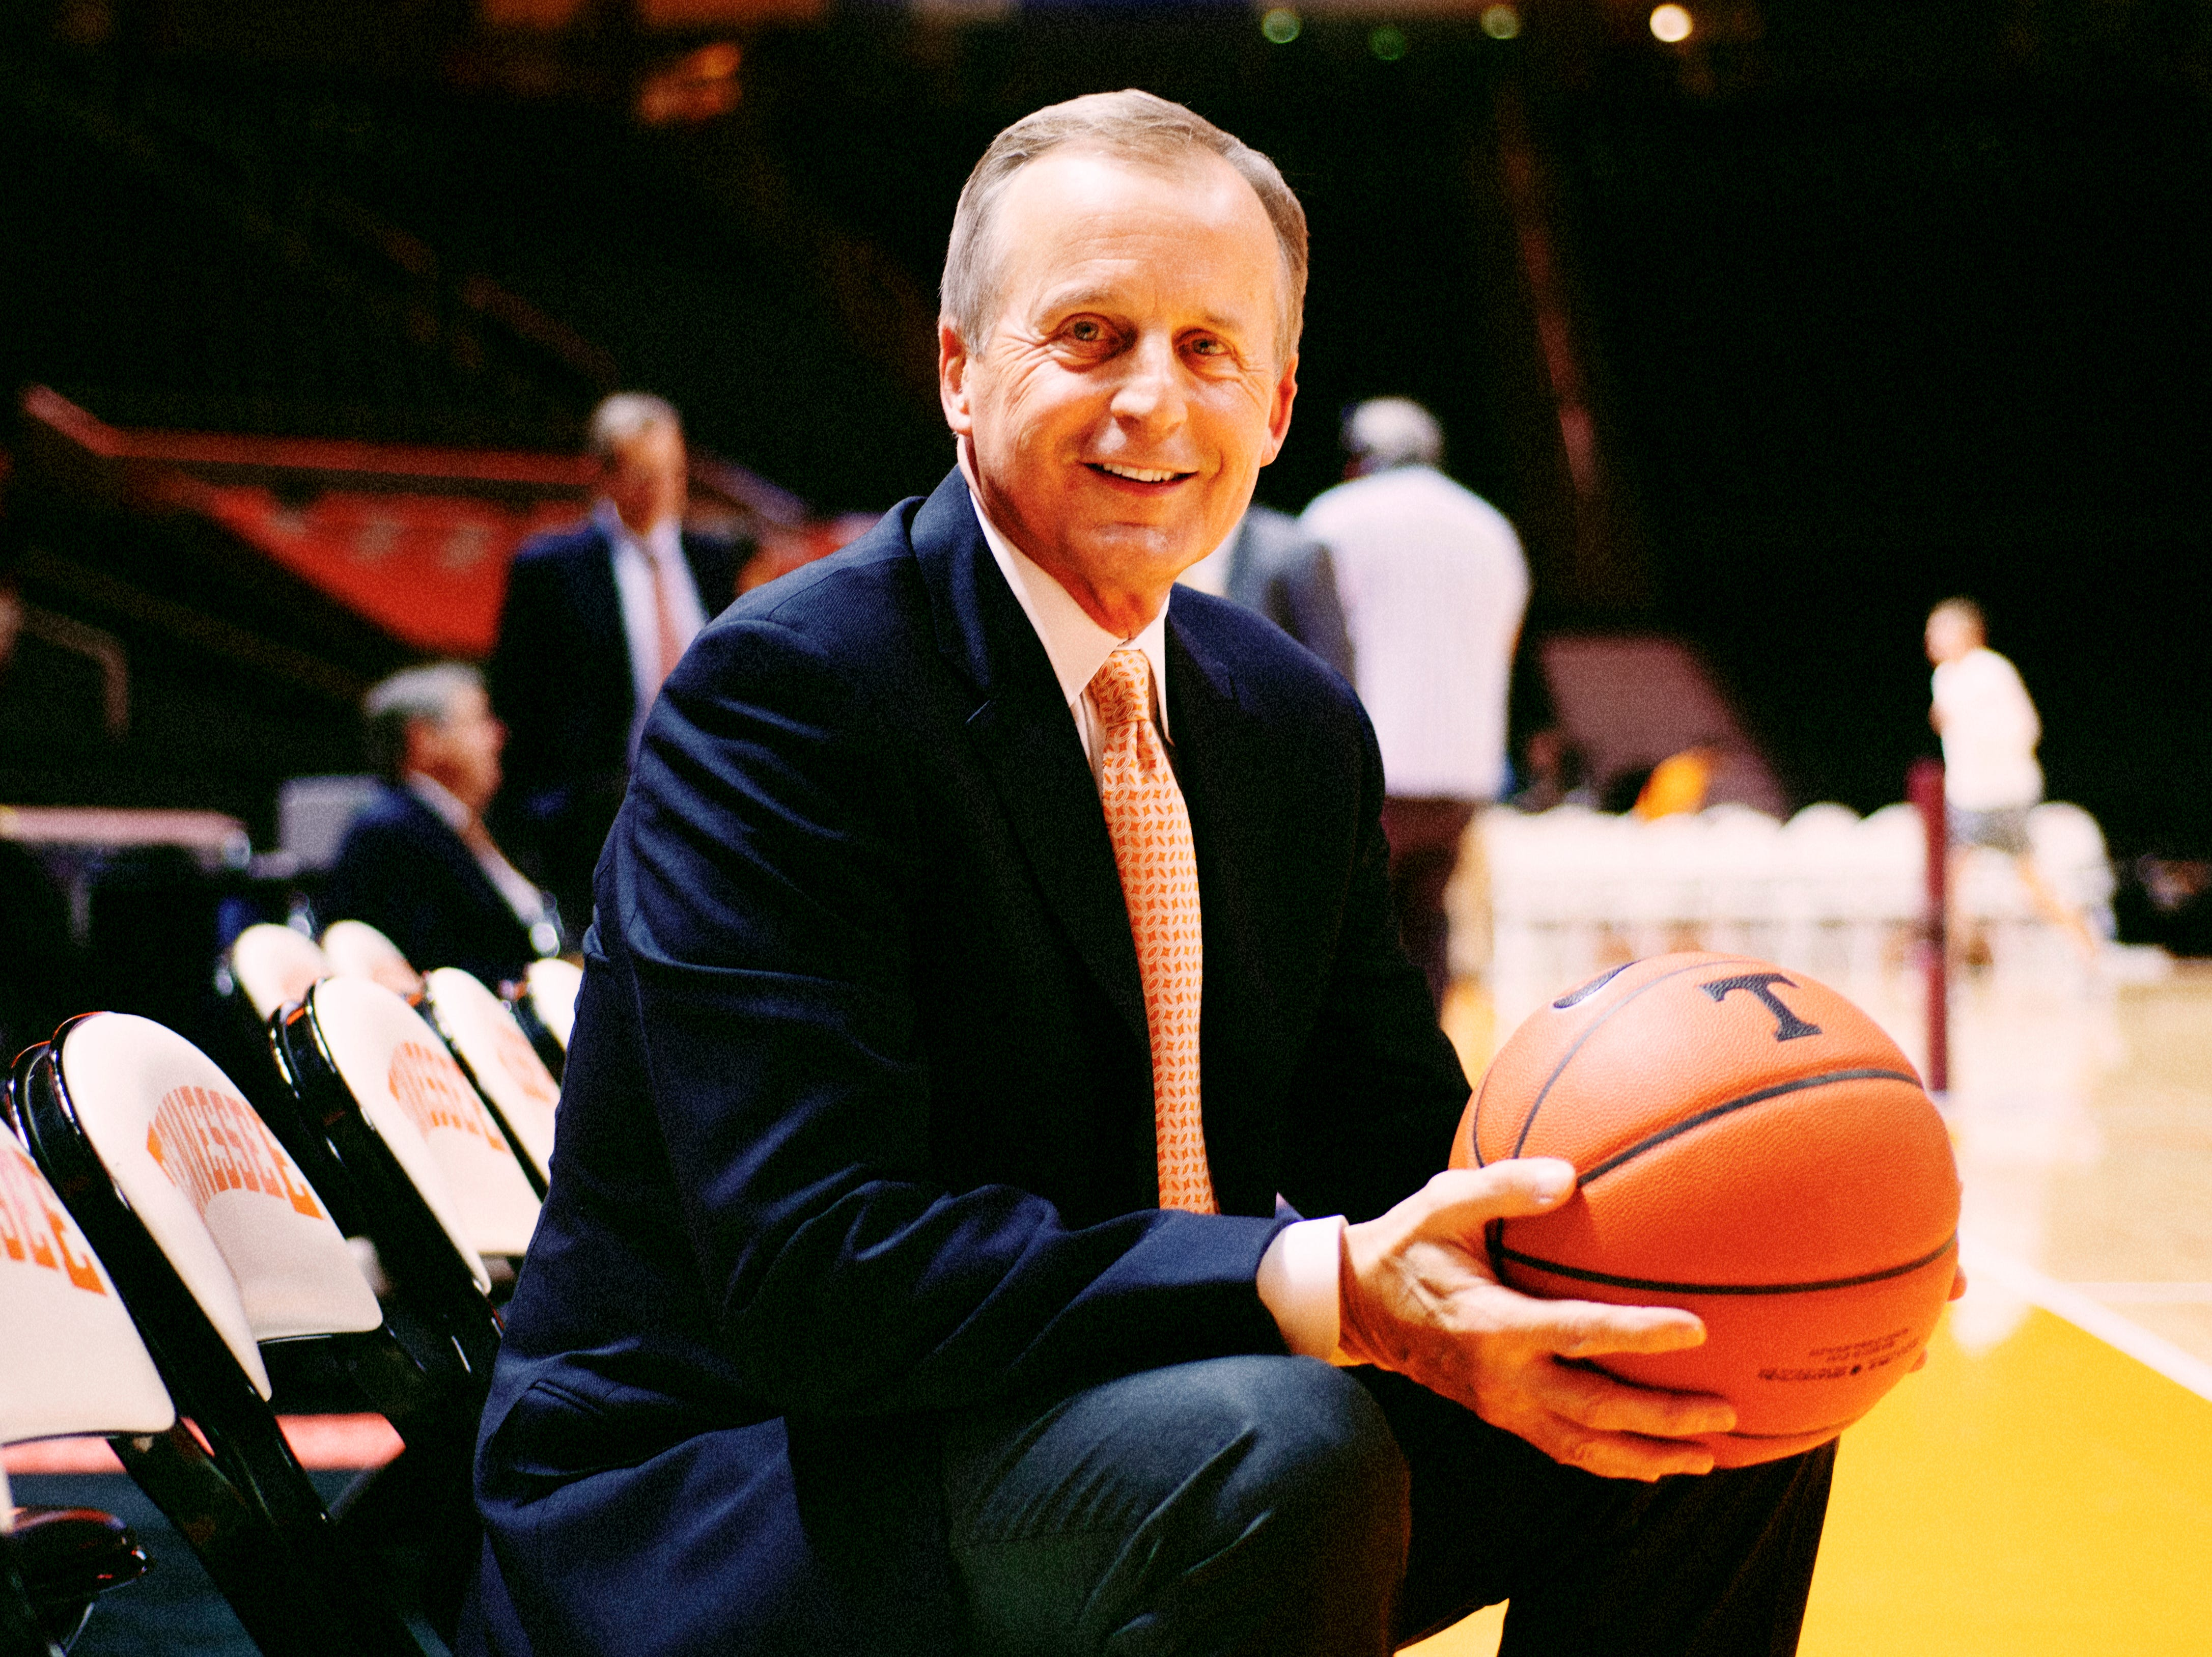 Tennessee Volunteers Basketball Head Coach Rick Barnes is the News Sentinel sportsperson of the year - taken on Knoxville, Tennessee on Wednesday, December 19, 2018.